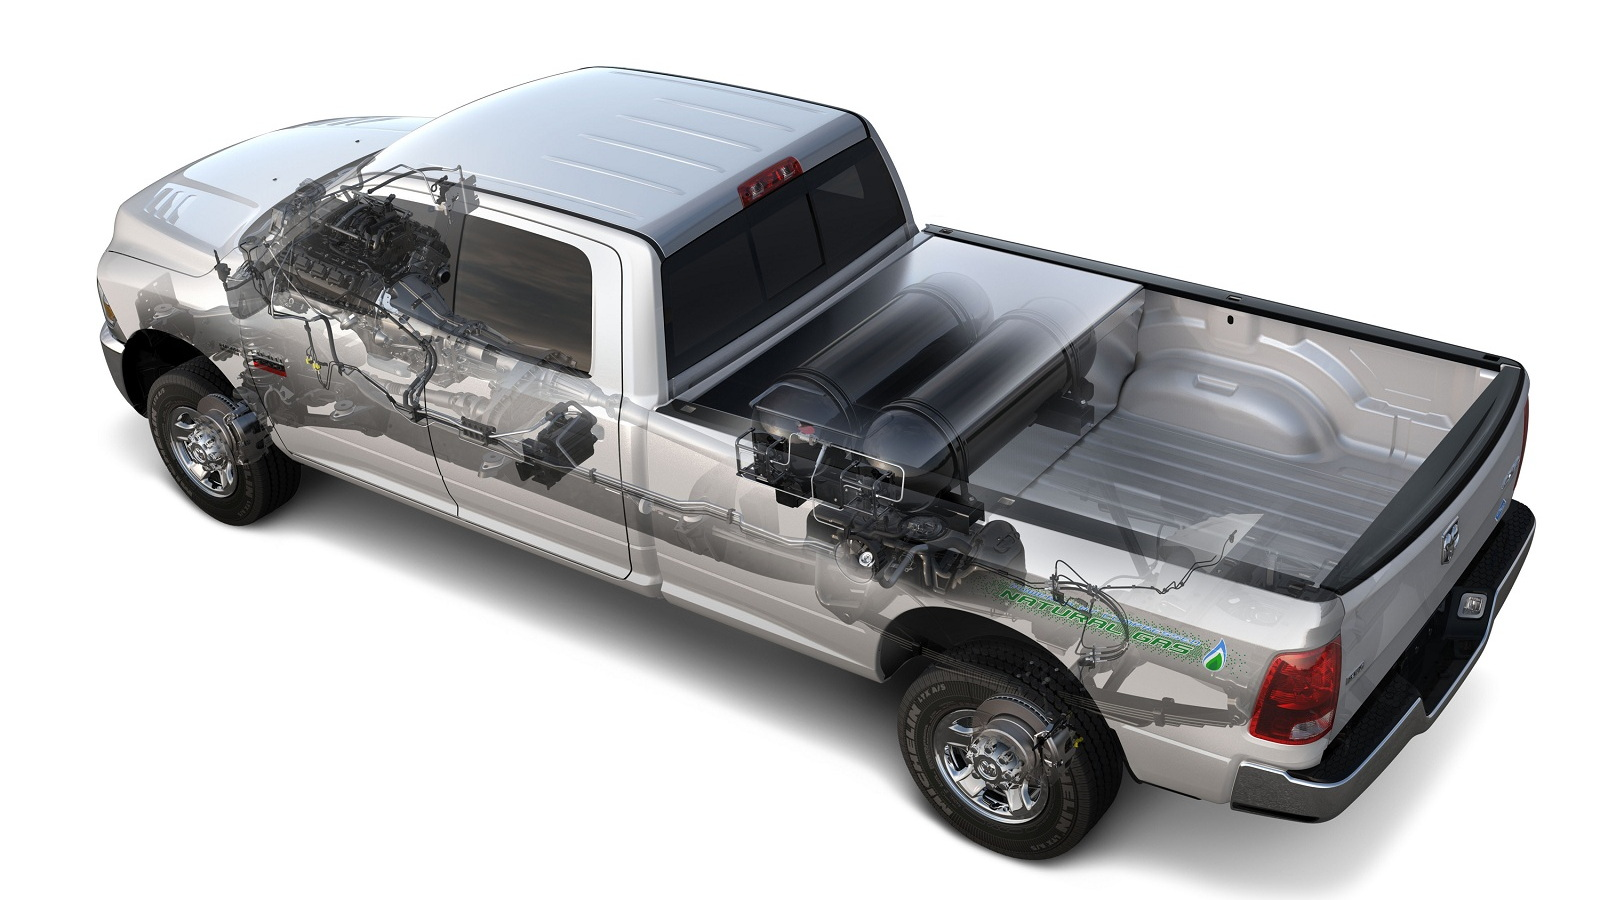 2013 Ram 2500 HD CNG pickup truck - natural-gas fuel system shown with engine